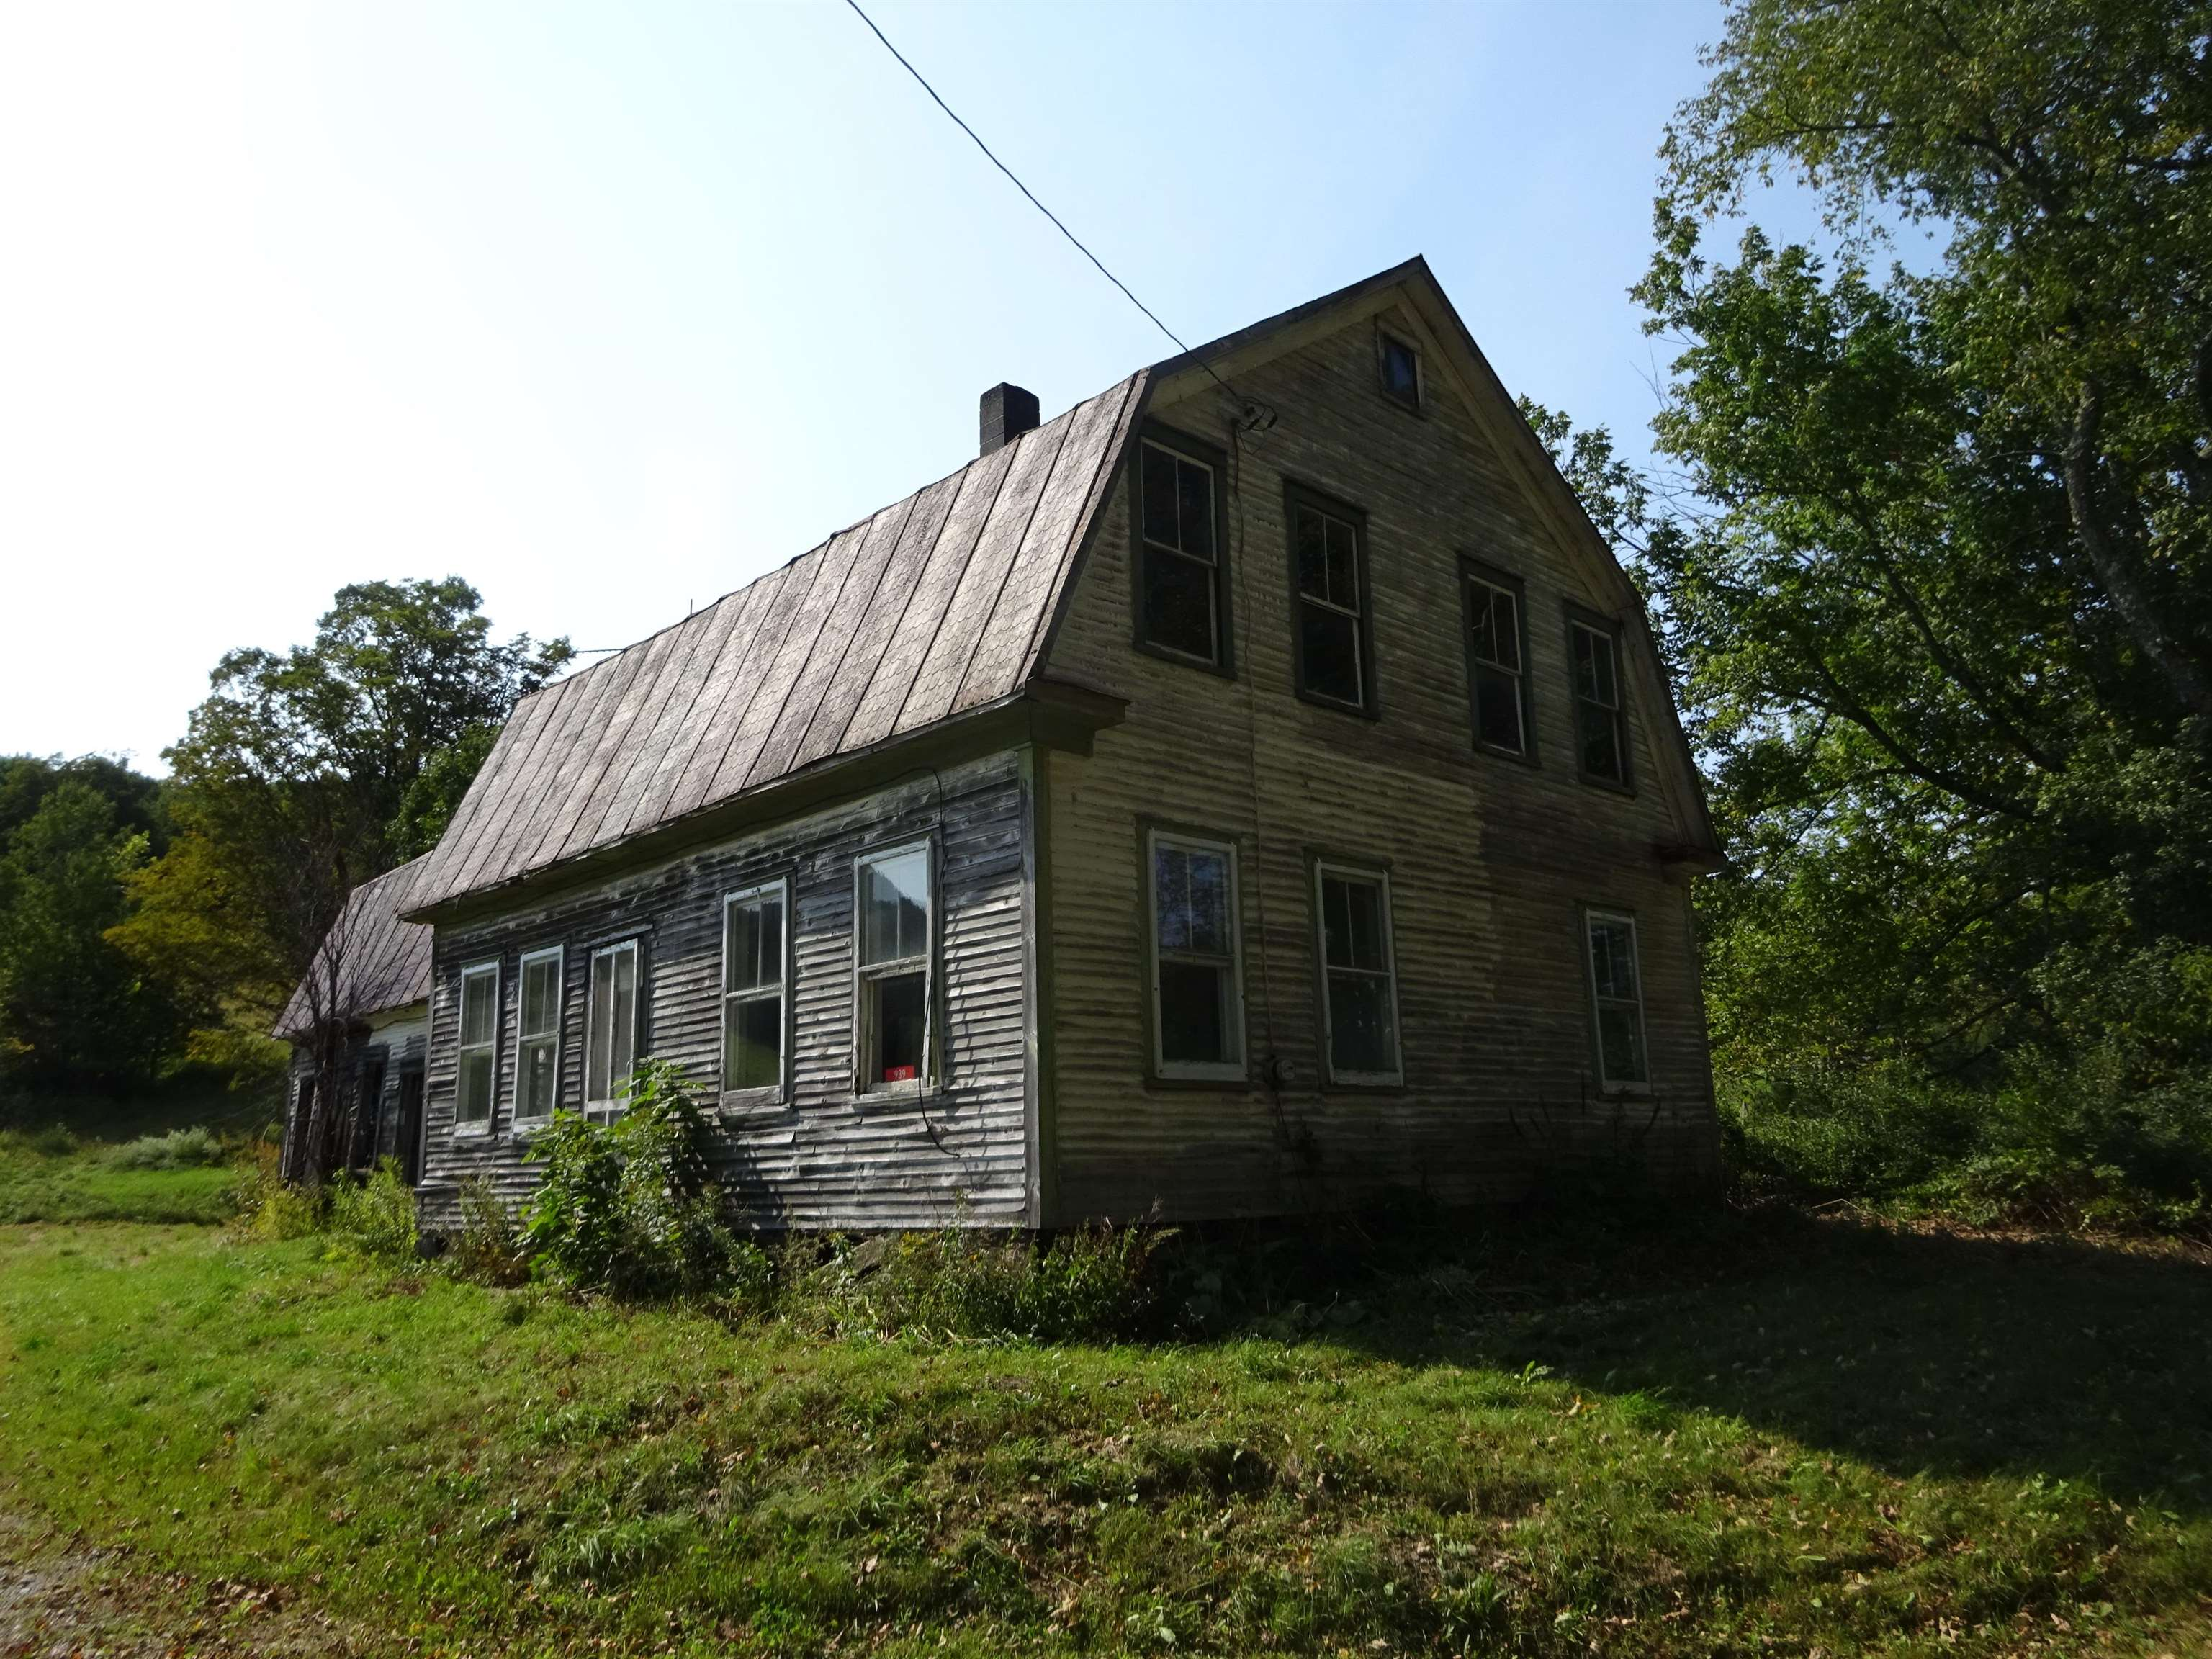 First time offered in 200+ years.  The Allen Farm consists of a 1800's home in need of complete renovation.  A large pole barn.  About 2 flat open acres around the home and barn, large field/pasture sloping uphill to beautiful  well managed sugar bush complete with trails.  Well located for gravity feed.  Very little brush or undergrowth.  Fiber opti internet avail at street. 800 mbps. The rehab project would be major.   Great location for horses.  Close to  the Green Mountain Horse Association.  Area popular for all outdoor activities.  Biking,  snowmobiling.   Close to skiing at Okemo , Killington and others.  Close to Upper Valley attractions.  Excellent access to great medical care.   Potential buyers should be pre approved or have funds that will allow purchase & rehab.